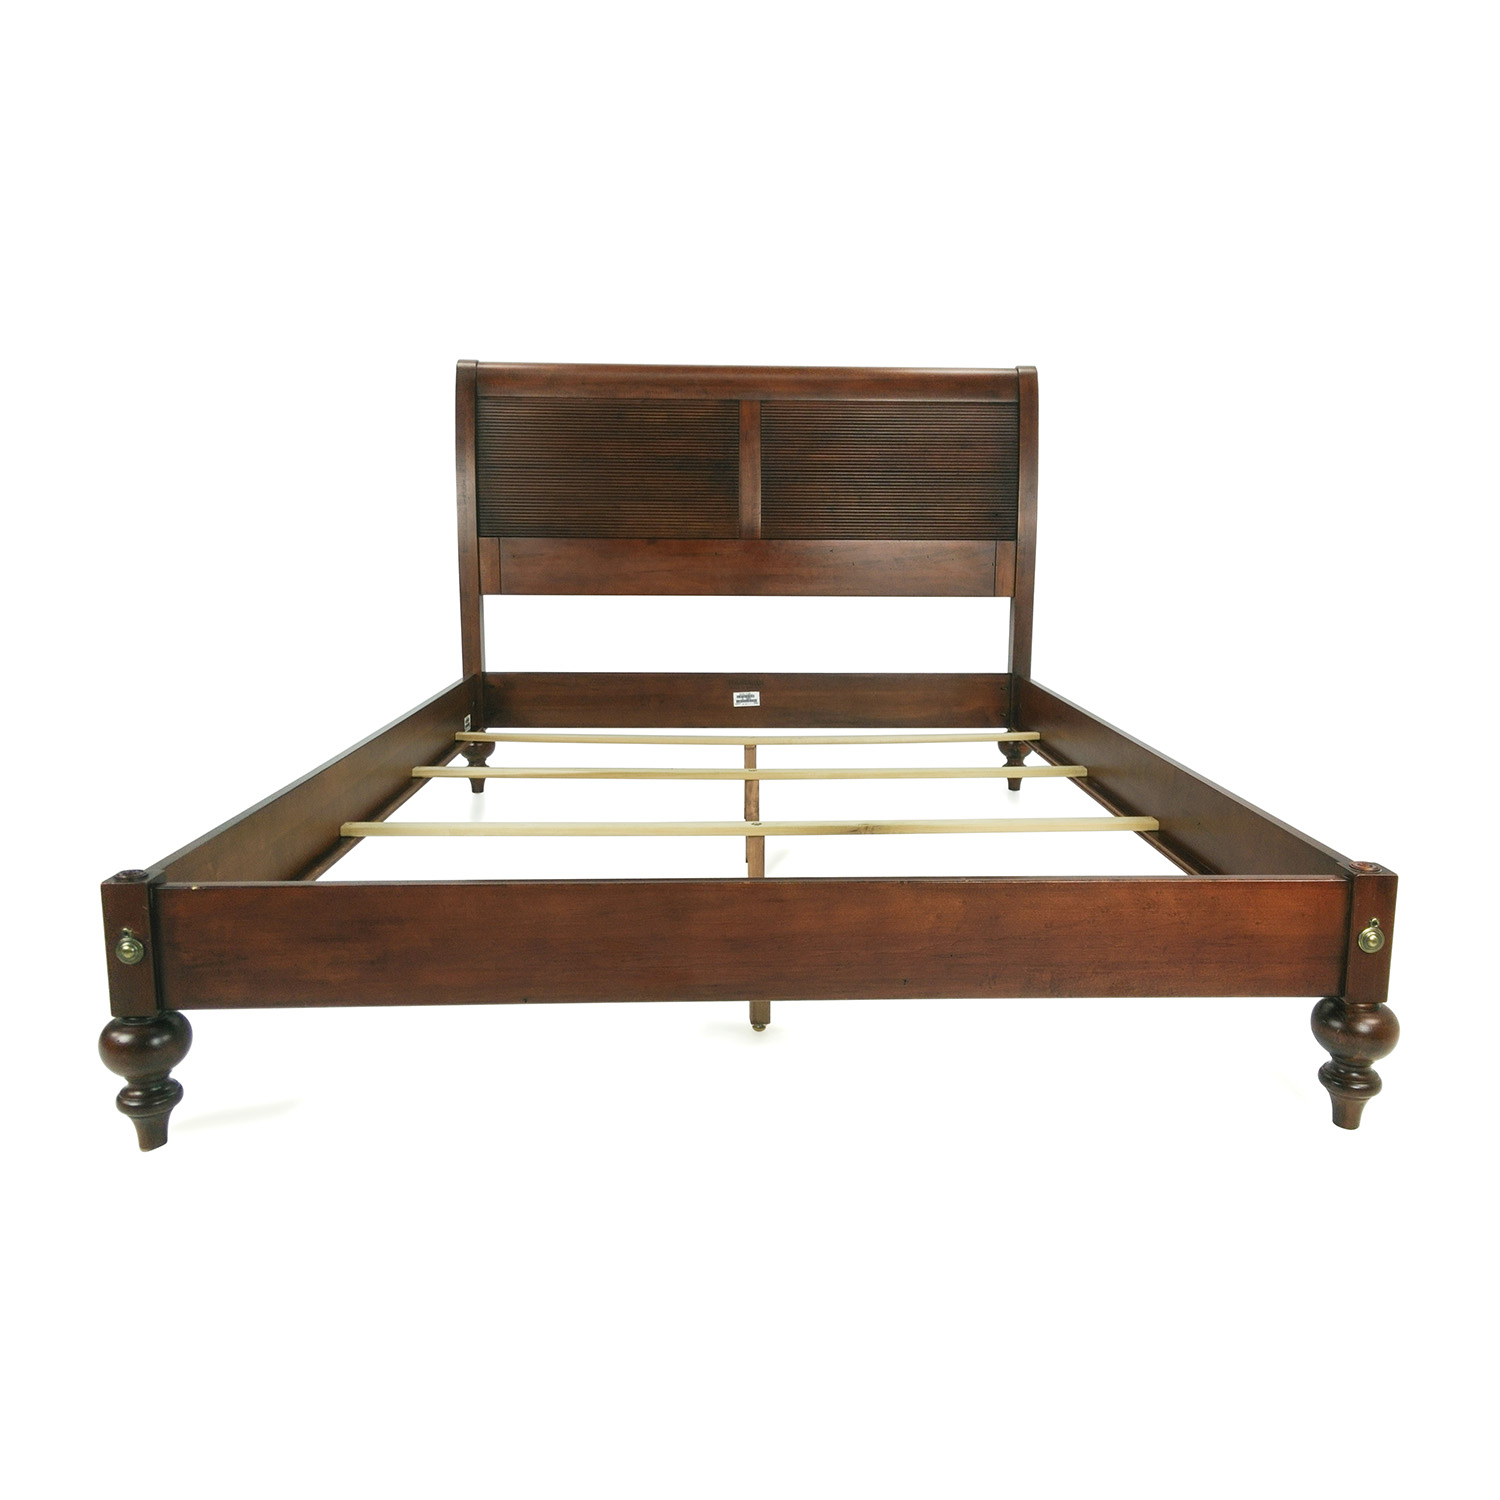 ethan allen queen bed frame beds - Used Bed Frames